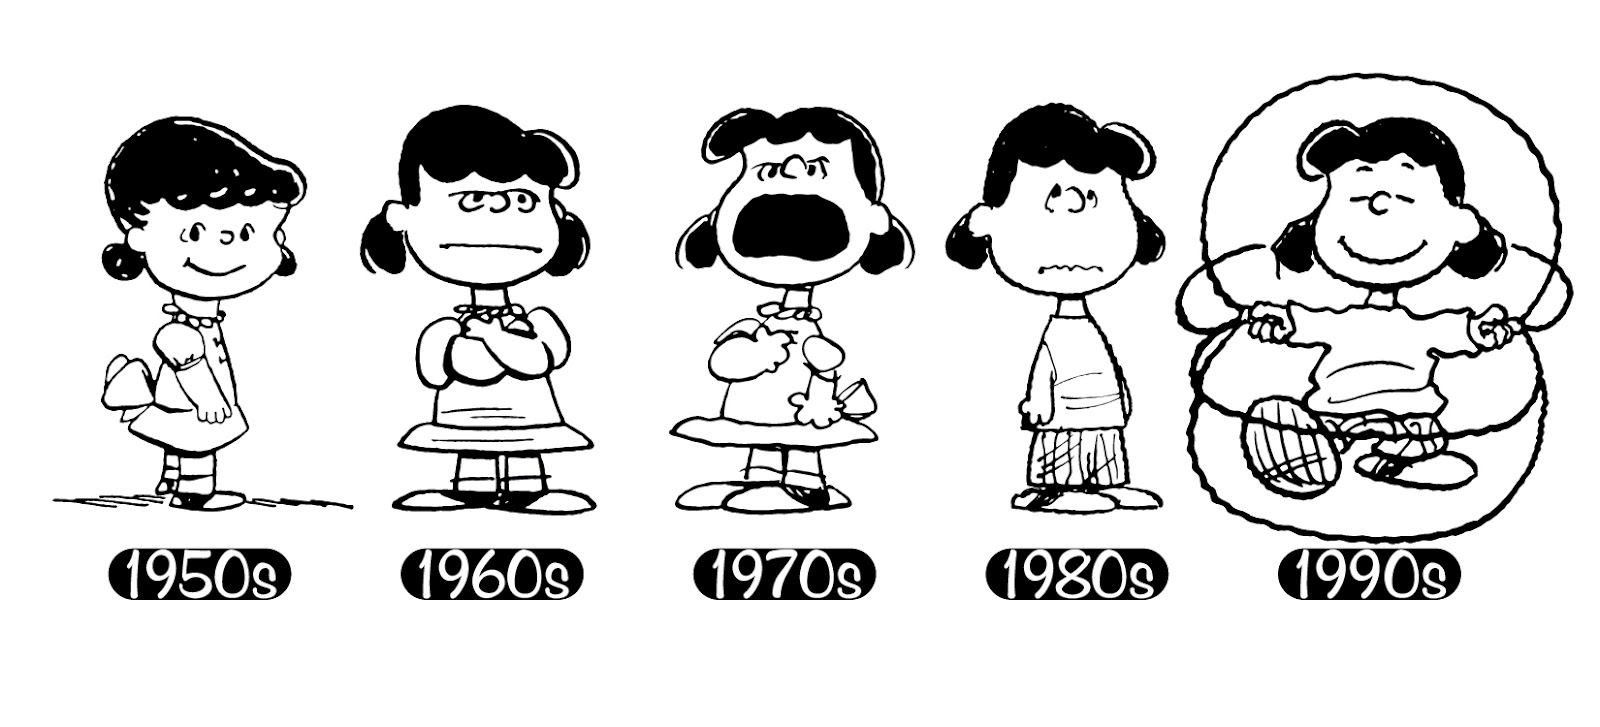 2 together with By Lucy From Peanuts Quotes as well Math Memes 05 moreover T79 Science Jokes moreover 45880489925229645. on happy birthday nerd